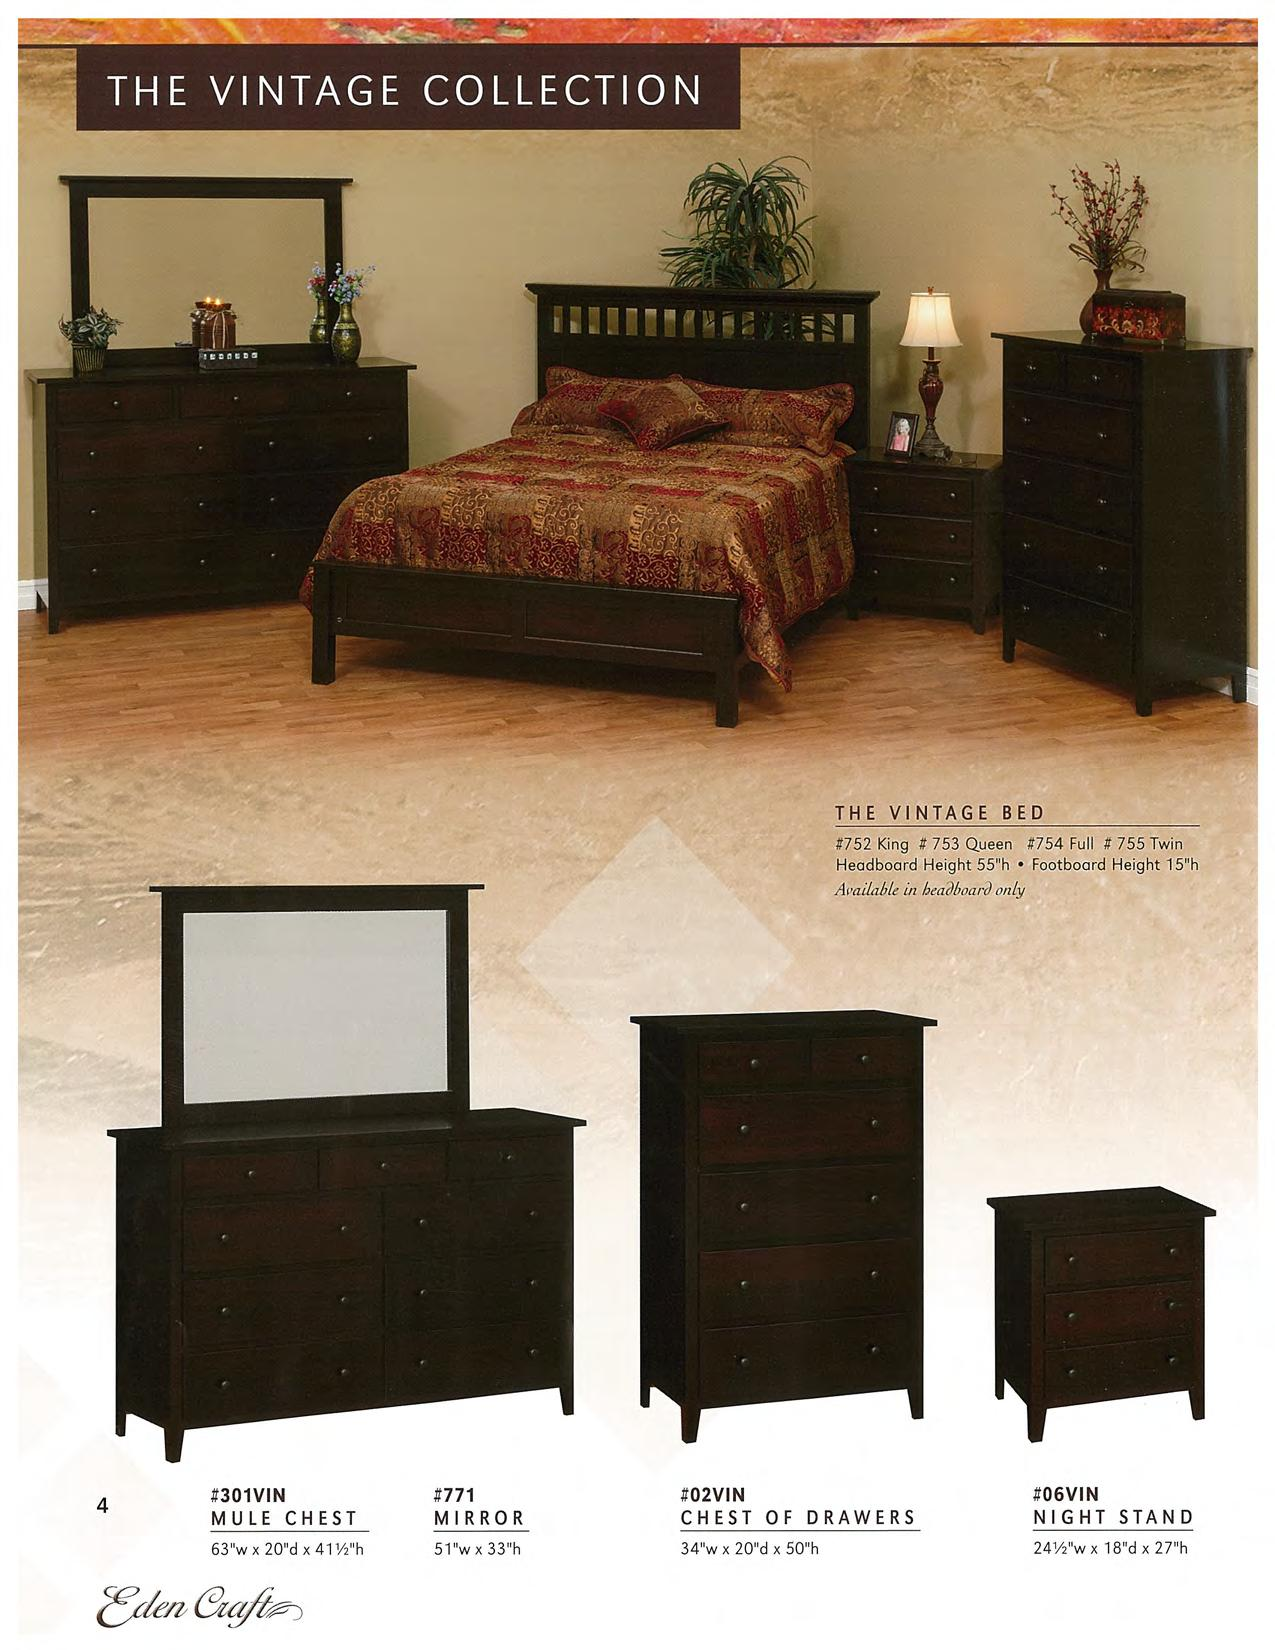 furniture-page-004